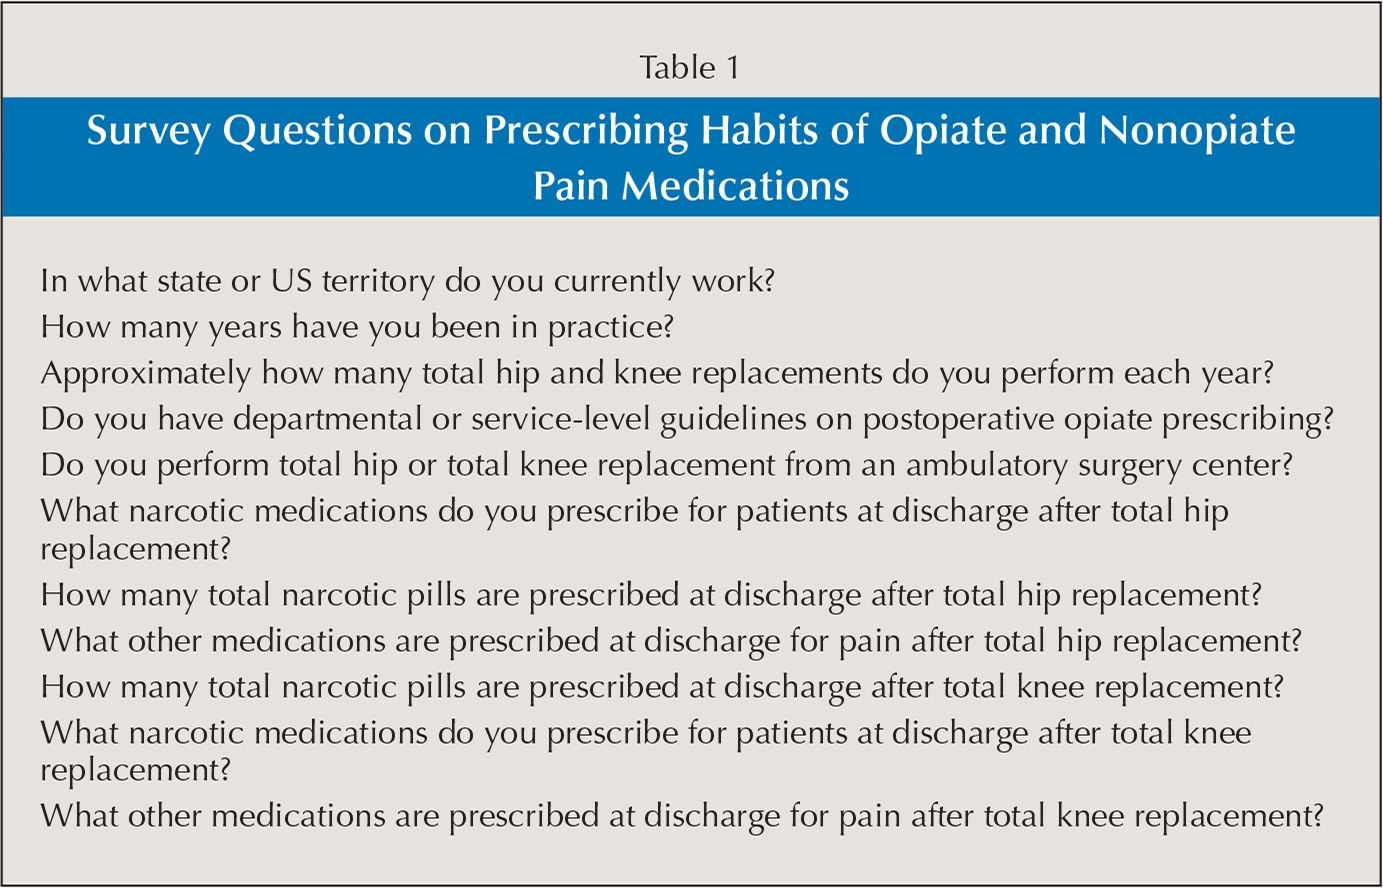 Survey Questions on Prescribing Habits of Opiate and Nonopiate Pain Medications